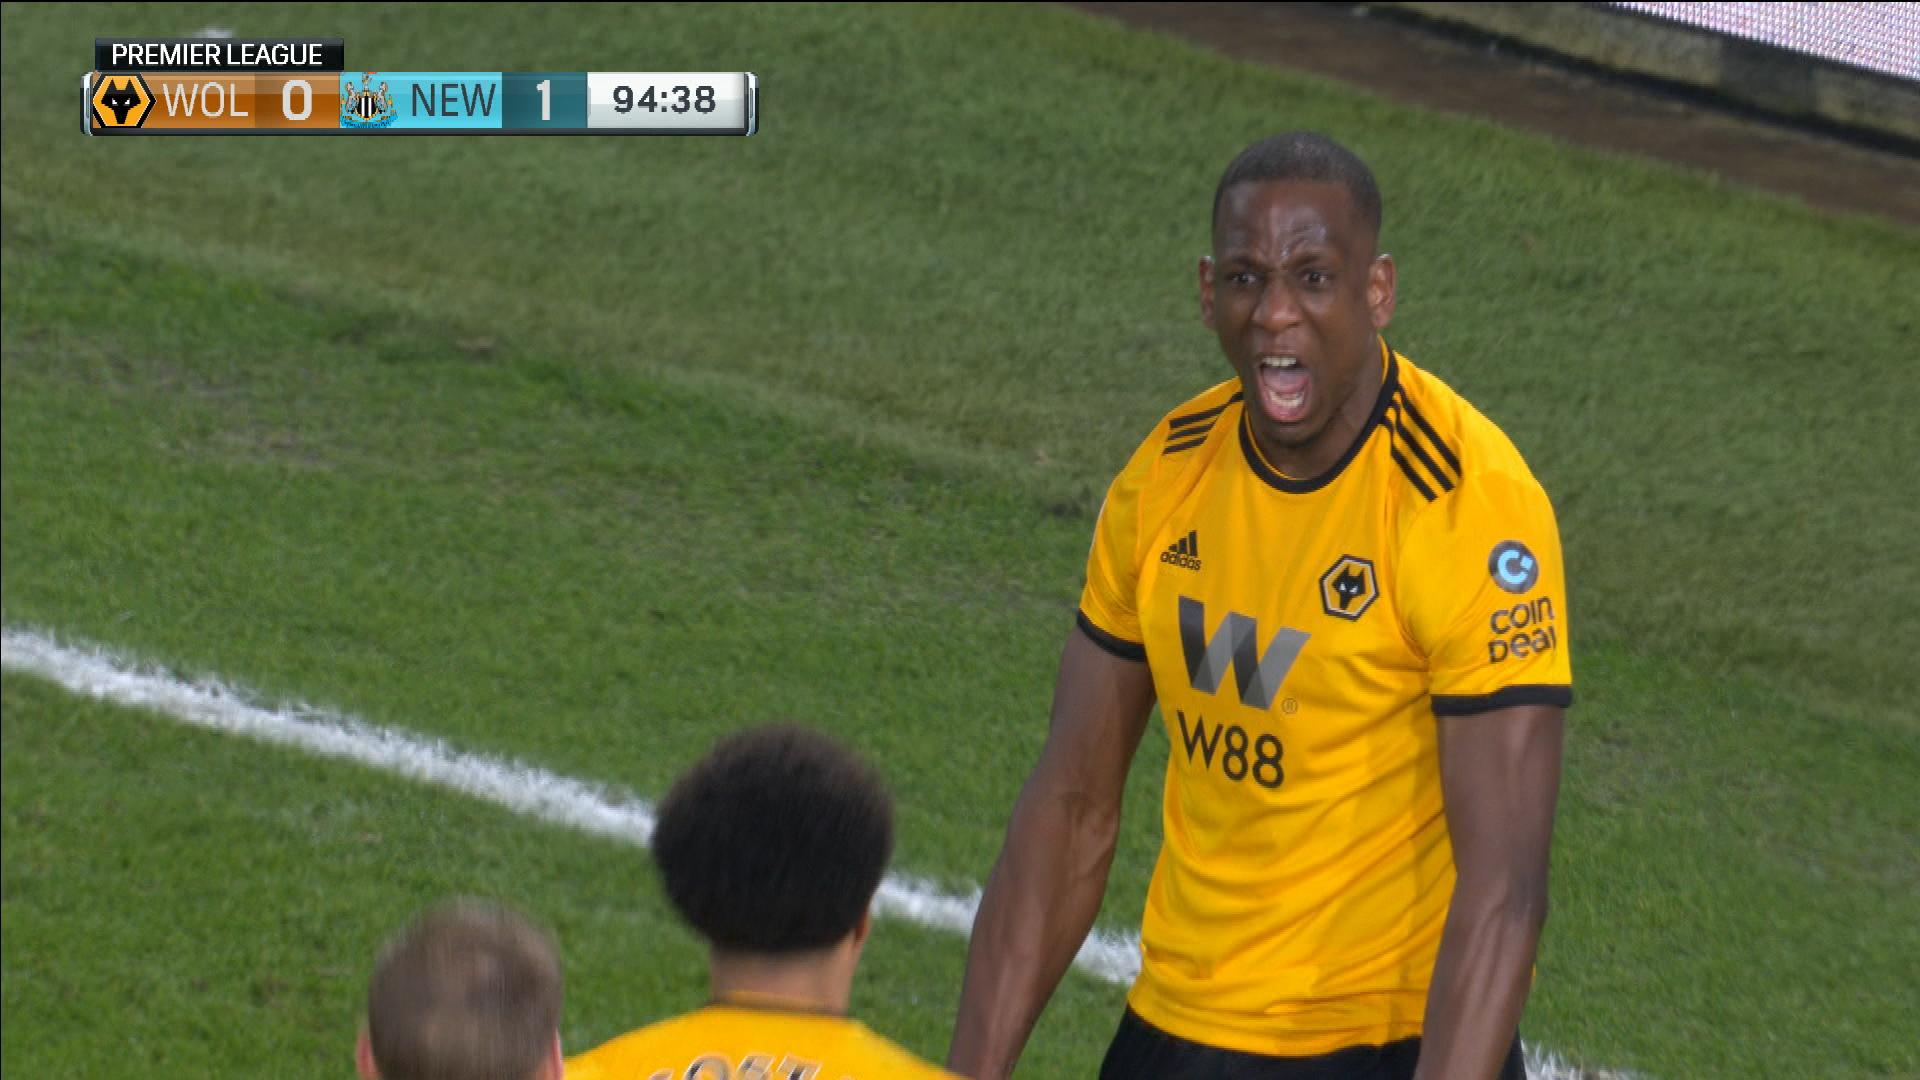 Wolves  Willy Boly scores last-second equalizer v. Newcastle  2fc5e80d1